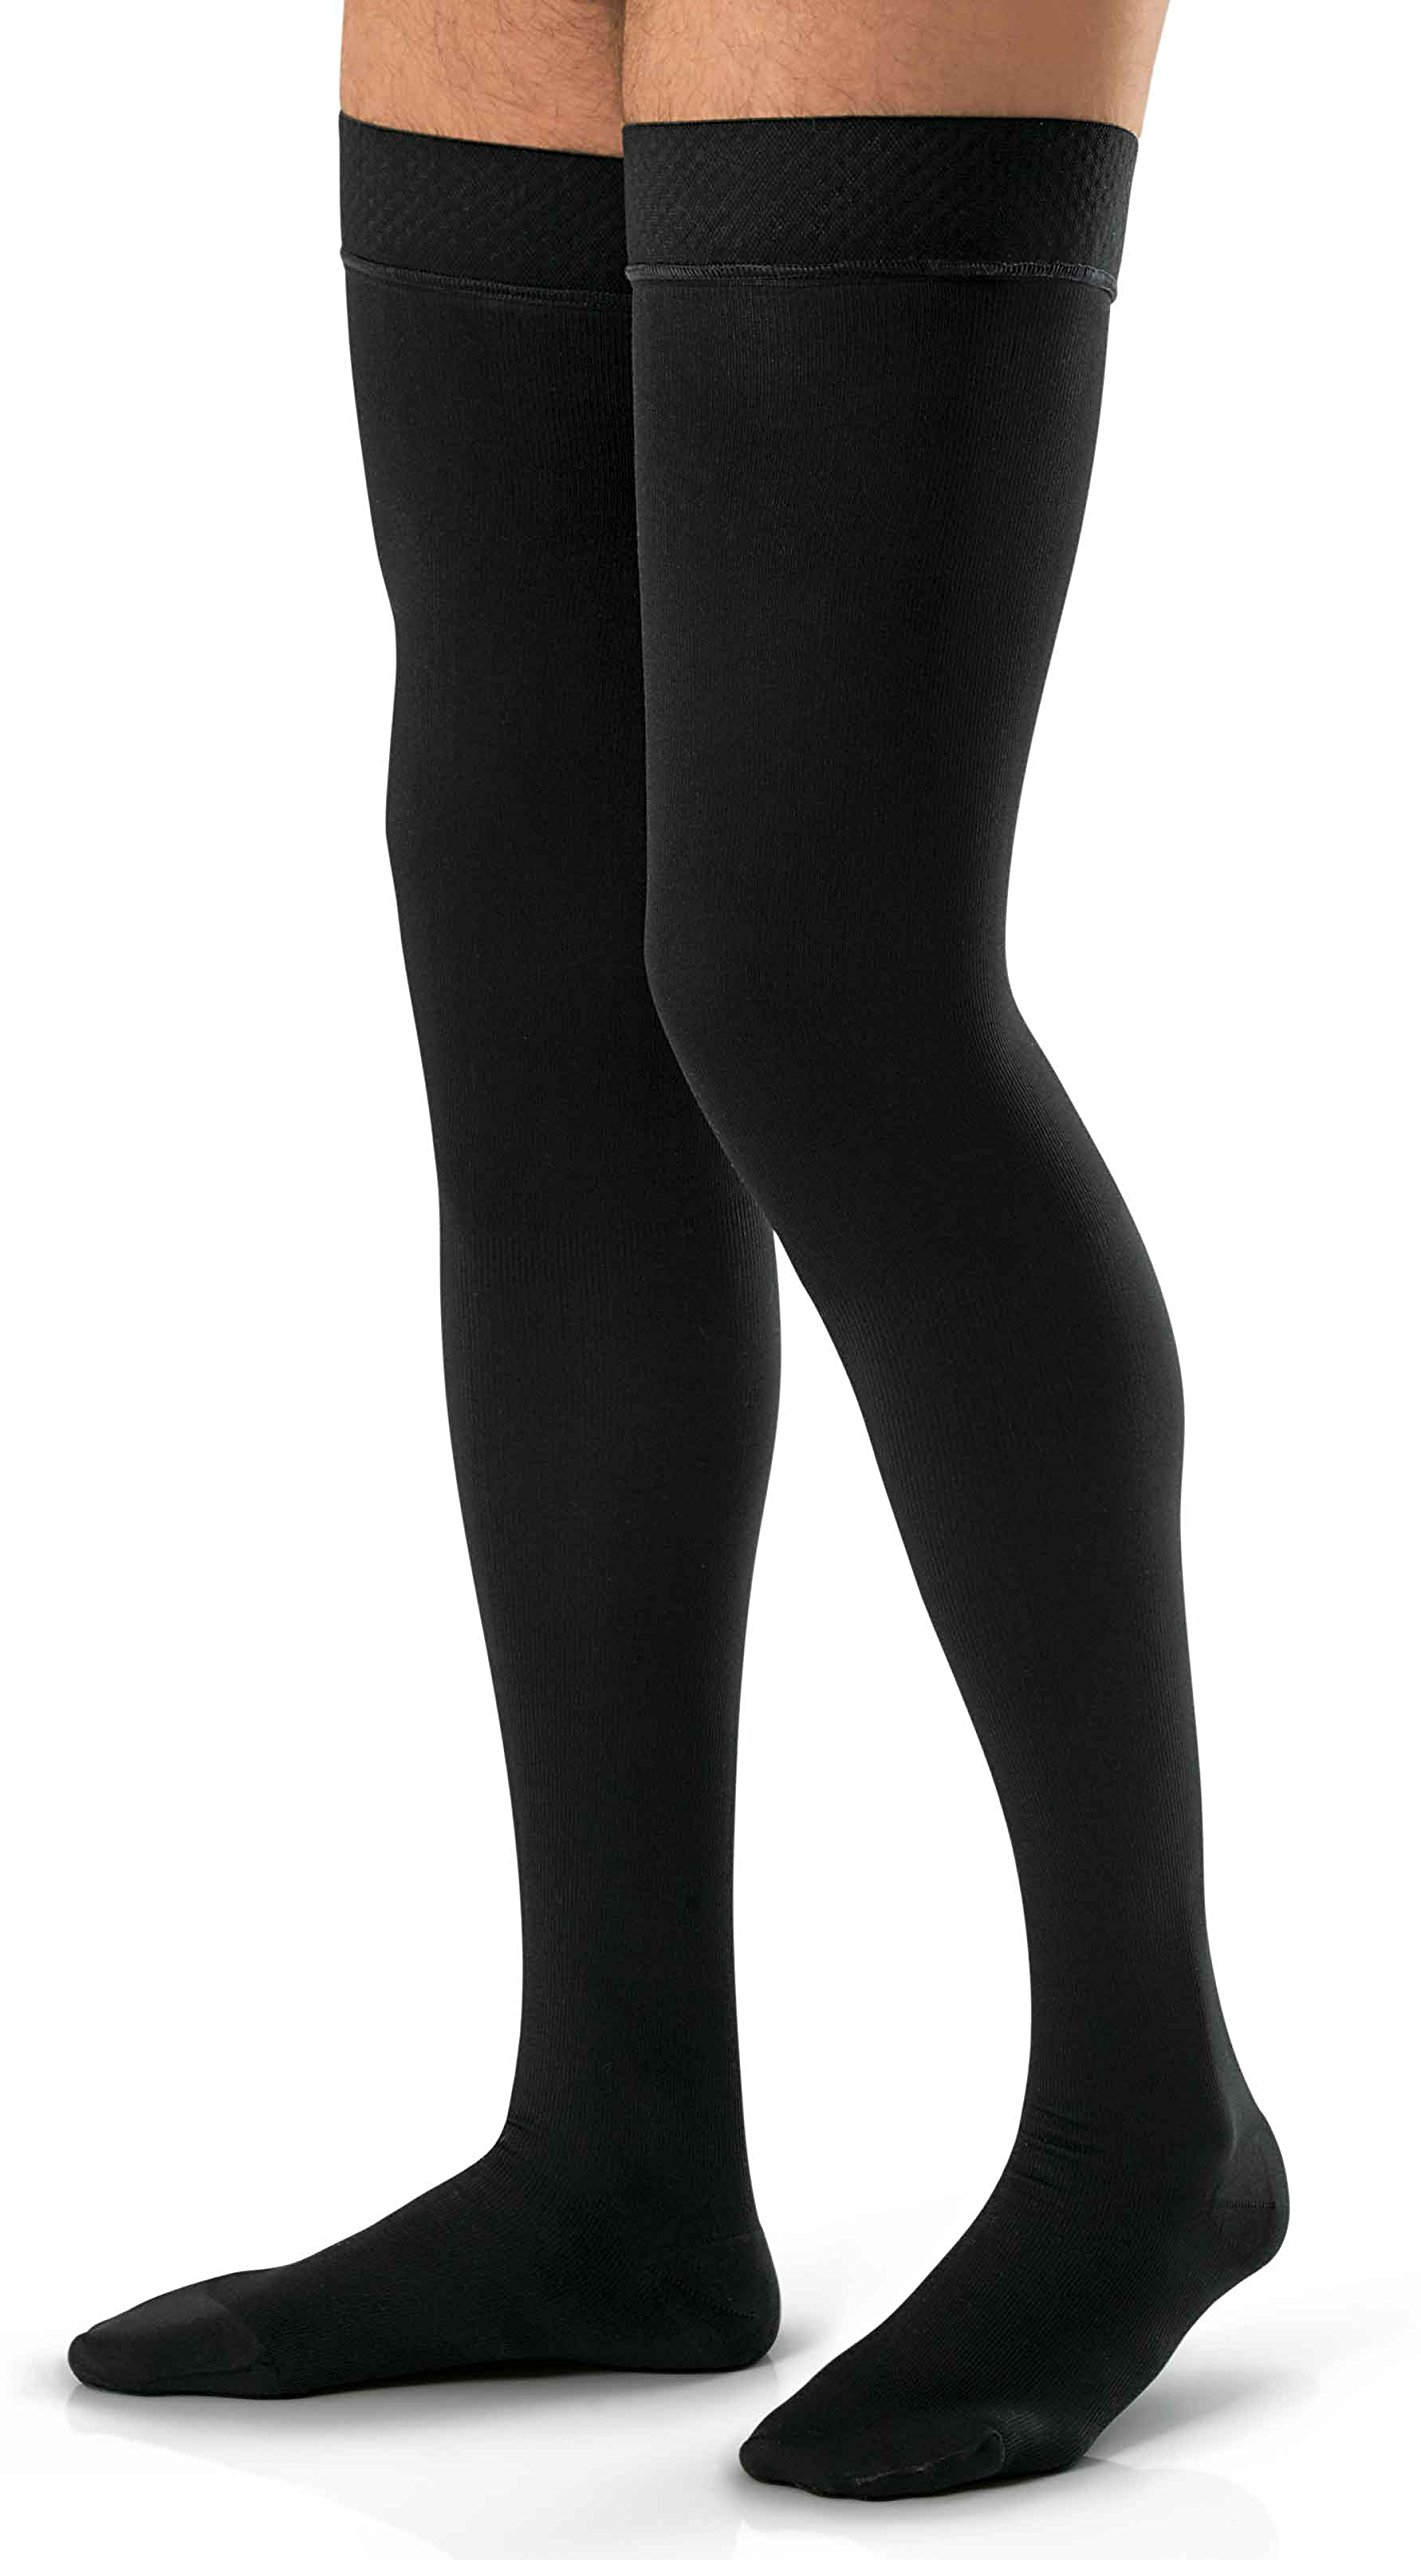 JOBST forMen Thigh High 20-30 mmHg Ribbed Dress Compression Stocking, Closed Toe, Medium, Black by JOBST